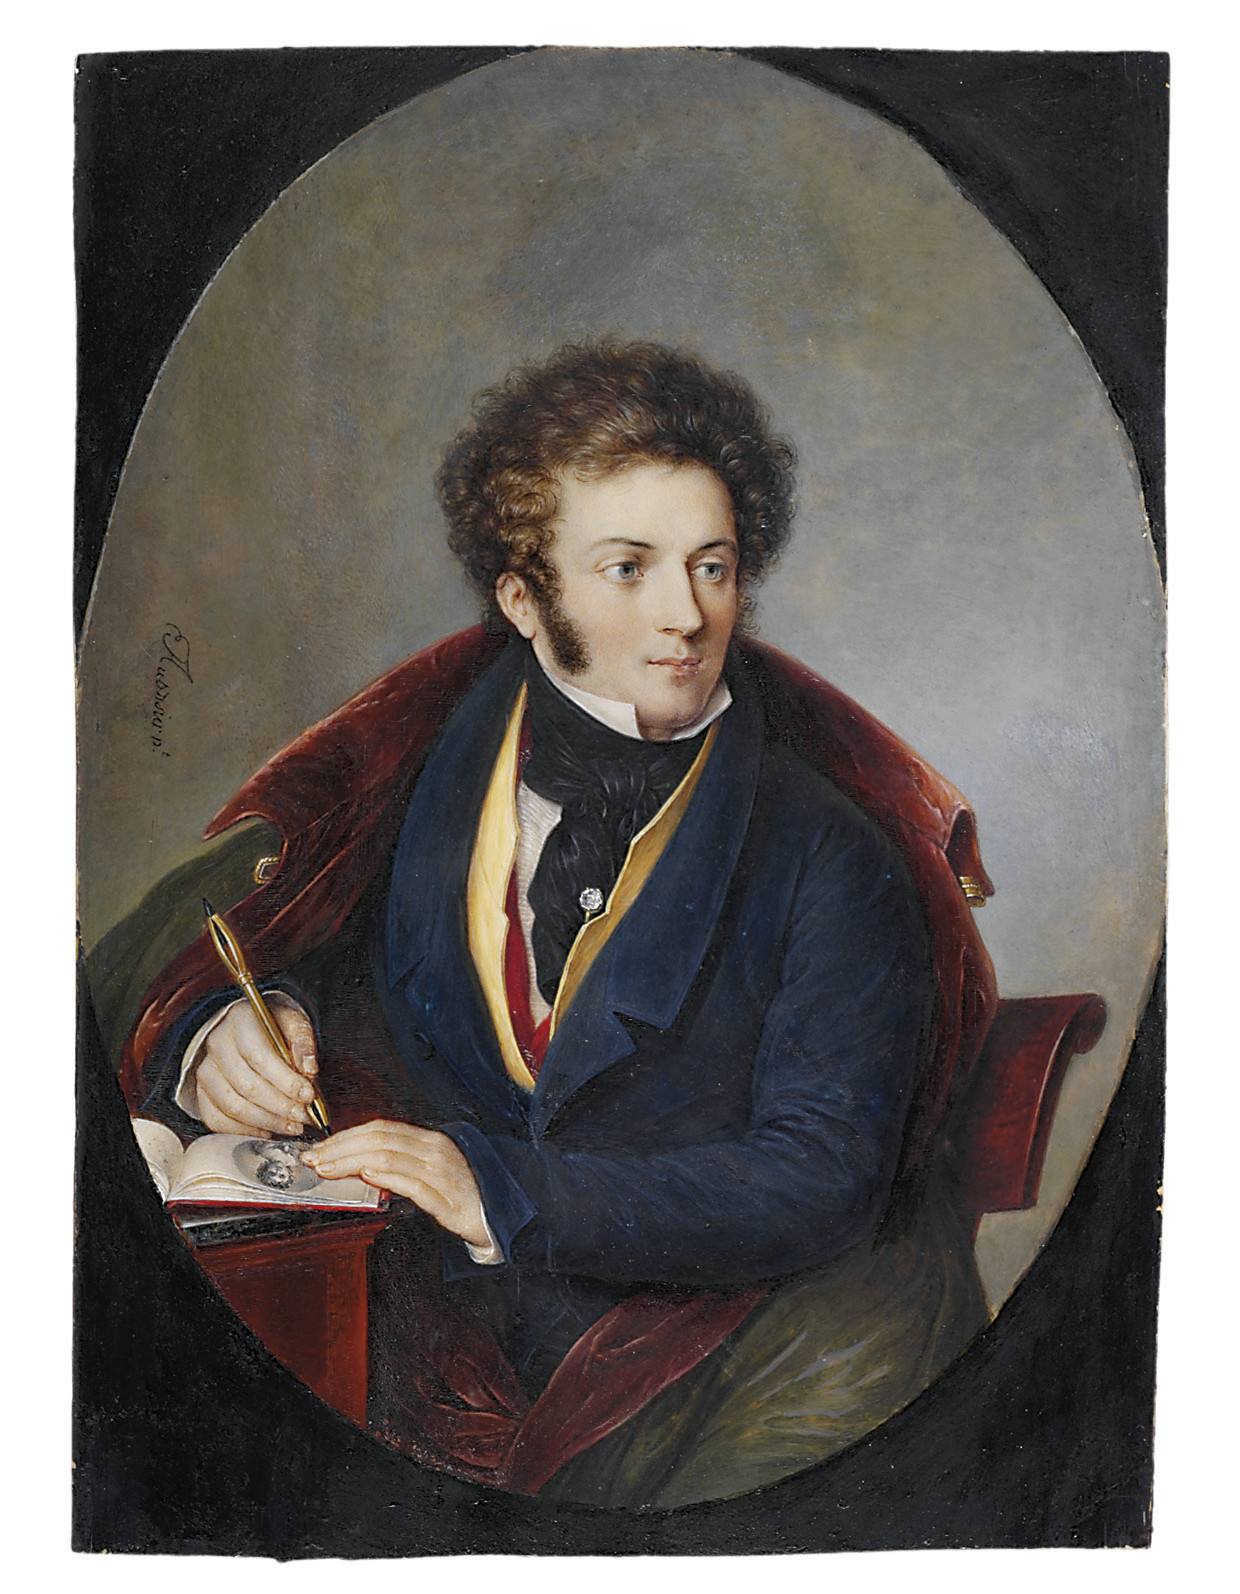 A young artist, seated at a desk, drawing a portrait of a young lady in a sketchbook, in blue coat, yellow waistcoat, white shirt, knotted black stock, gem-set tie-pin, a burgundy velvet-lined olive green coat draped over his shoulders